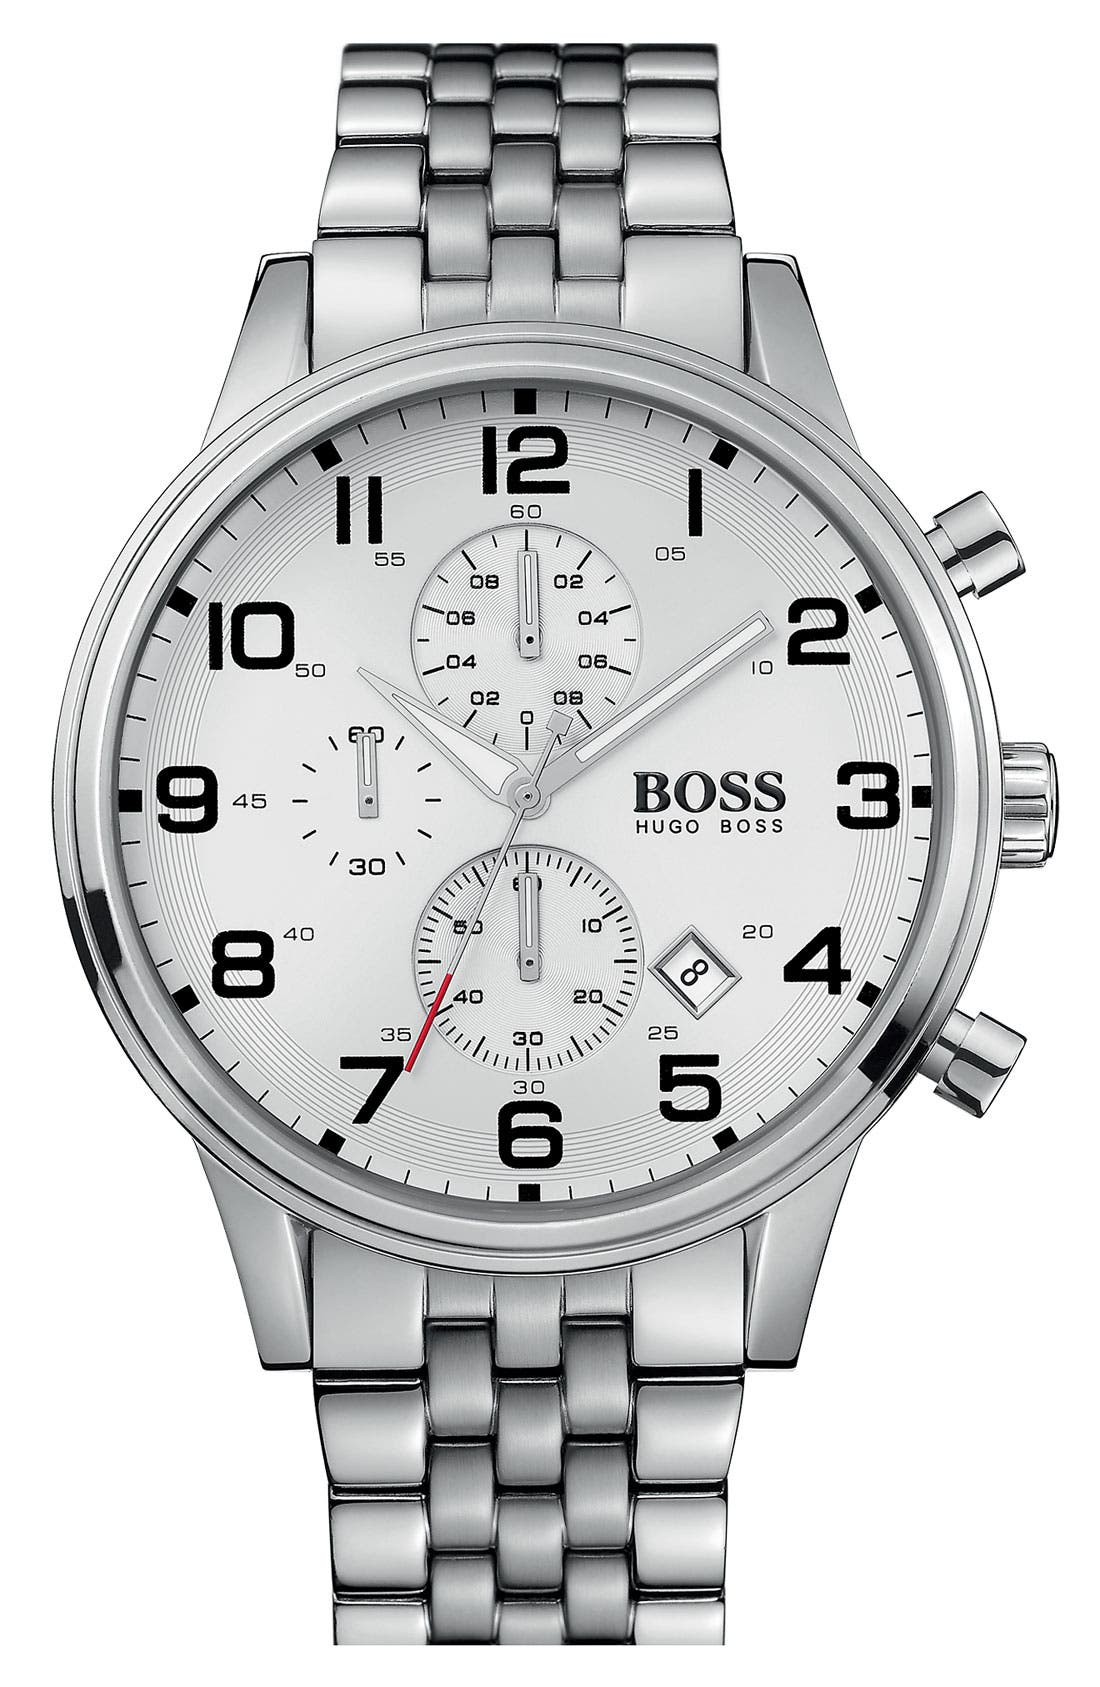 Main Image - BOSS HUGO BOSS Chronograph Stainless Steel Bracelet Watch, 44mm